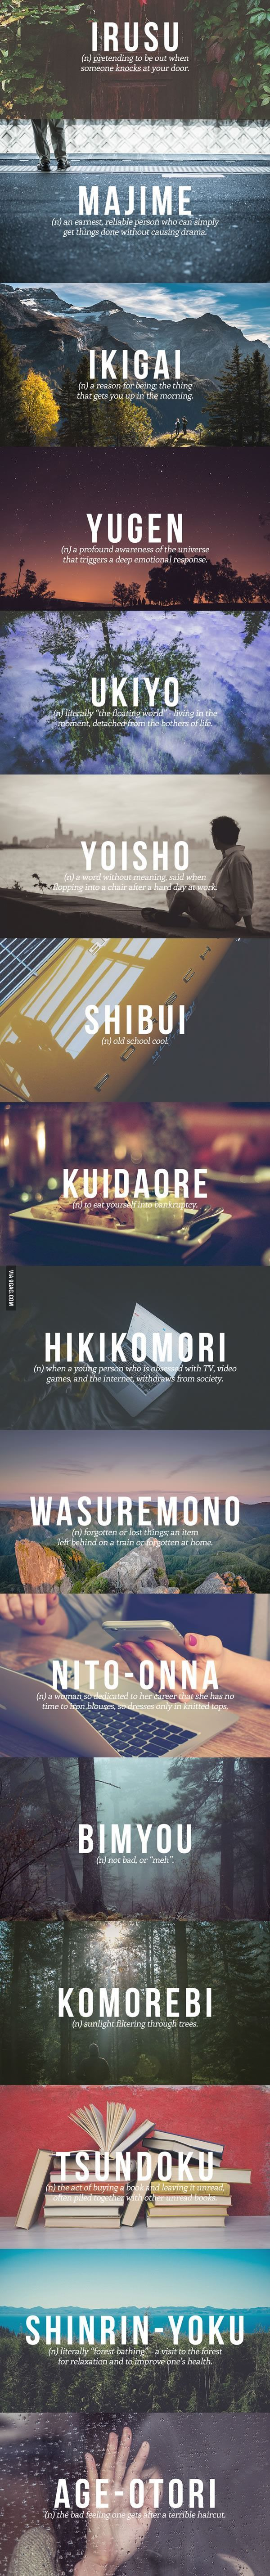 "Enlightening...""The Perfect Japanese Words You Need In Your Life"""